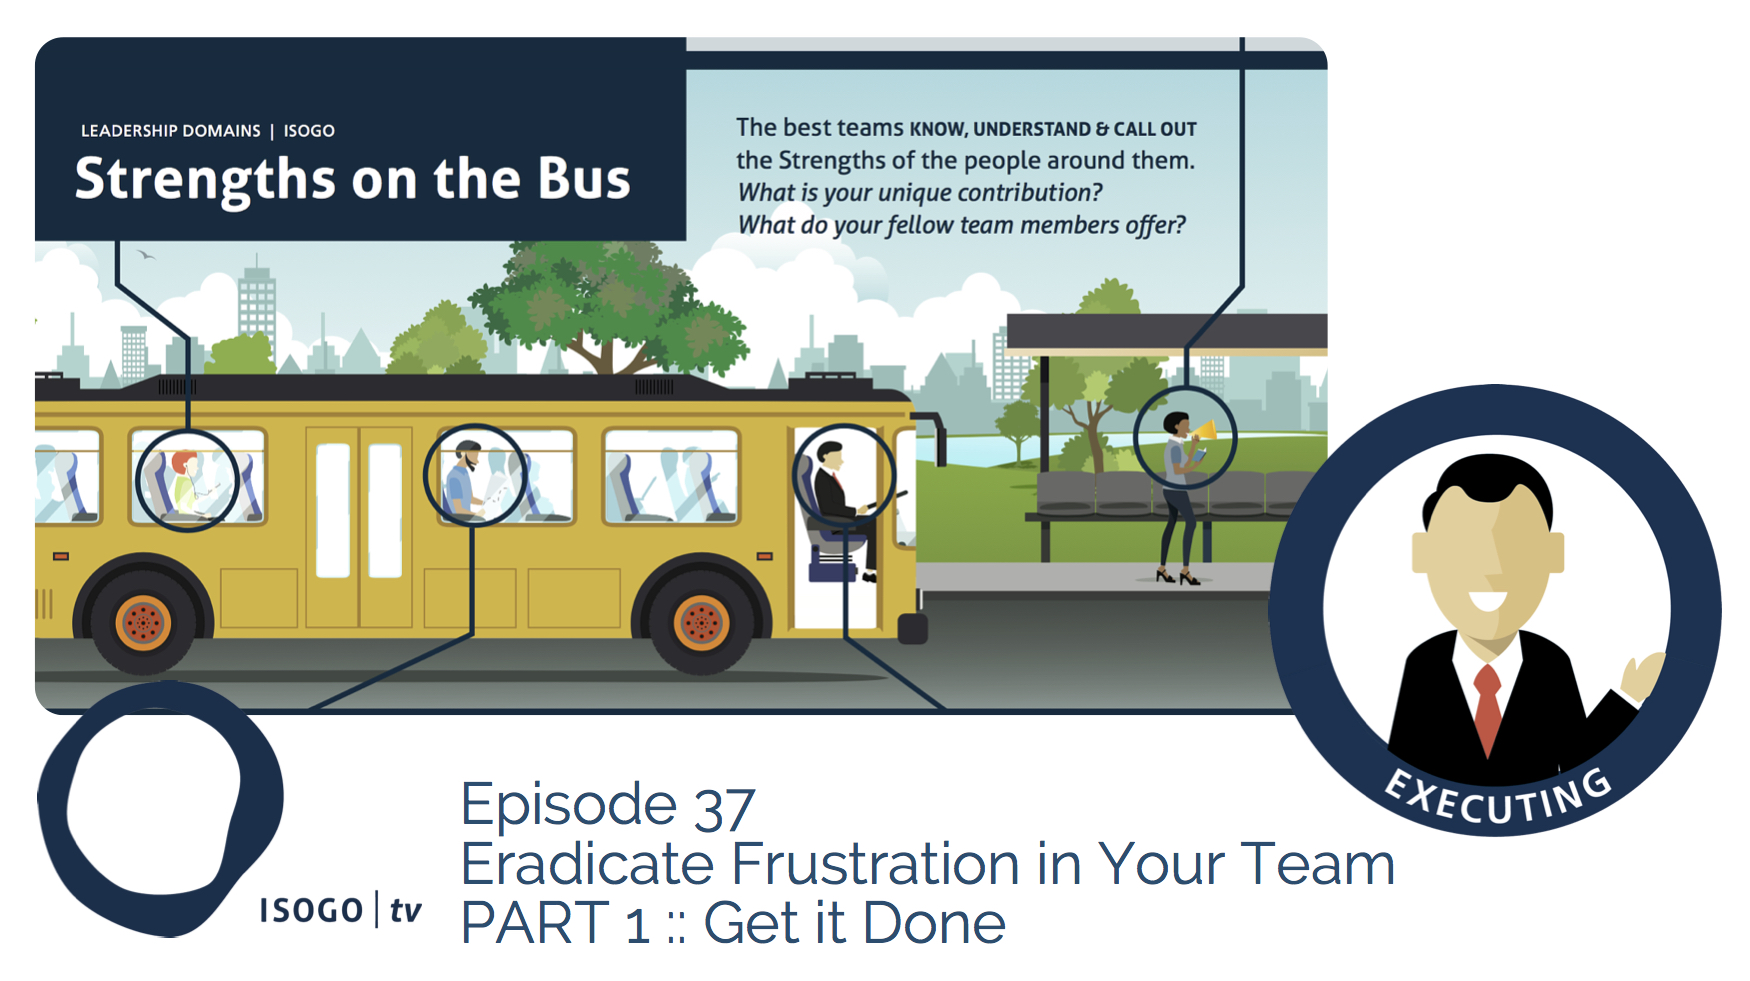 Eradicate Frustration in Your Team Part 1 :: Get It Done | Isogo TV Episode 37